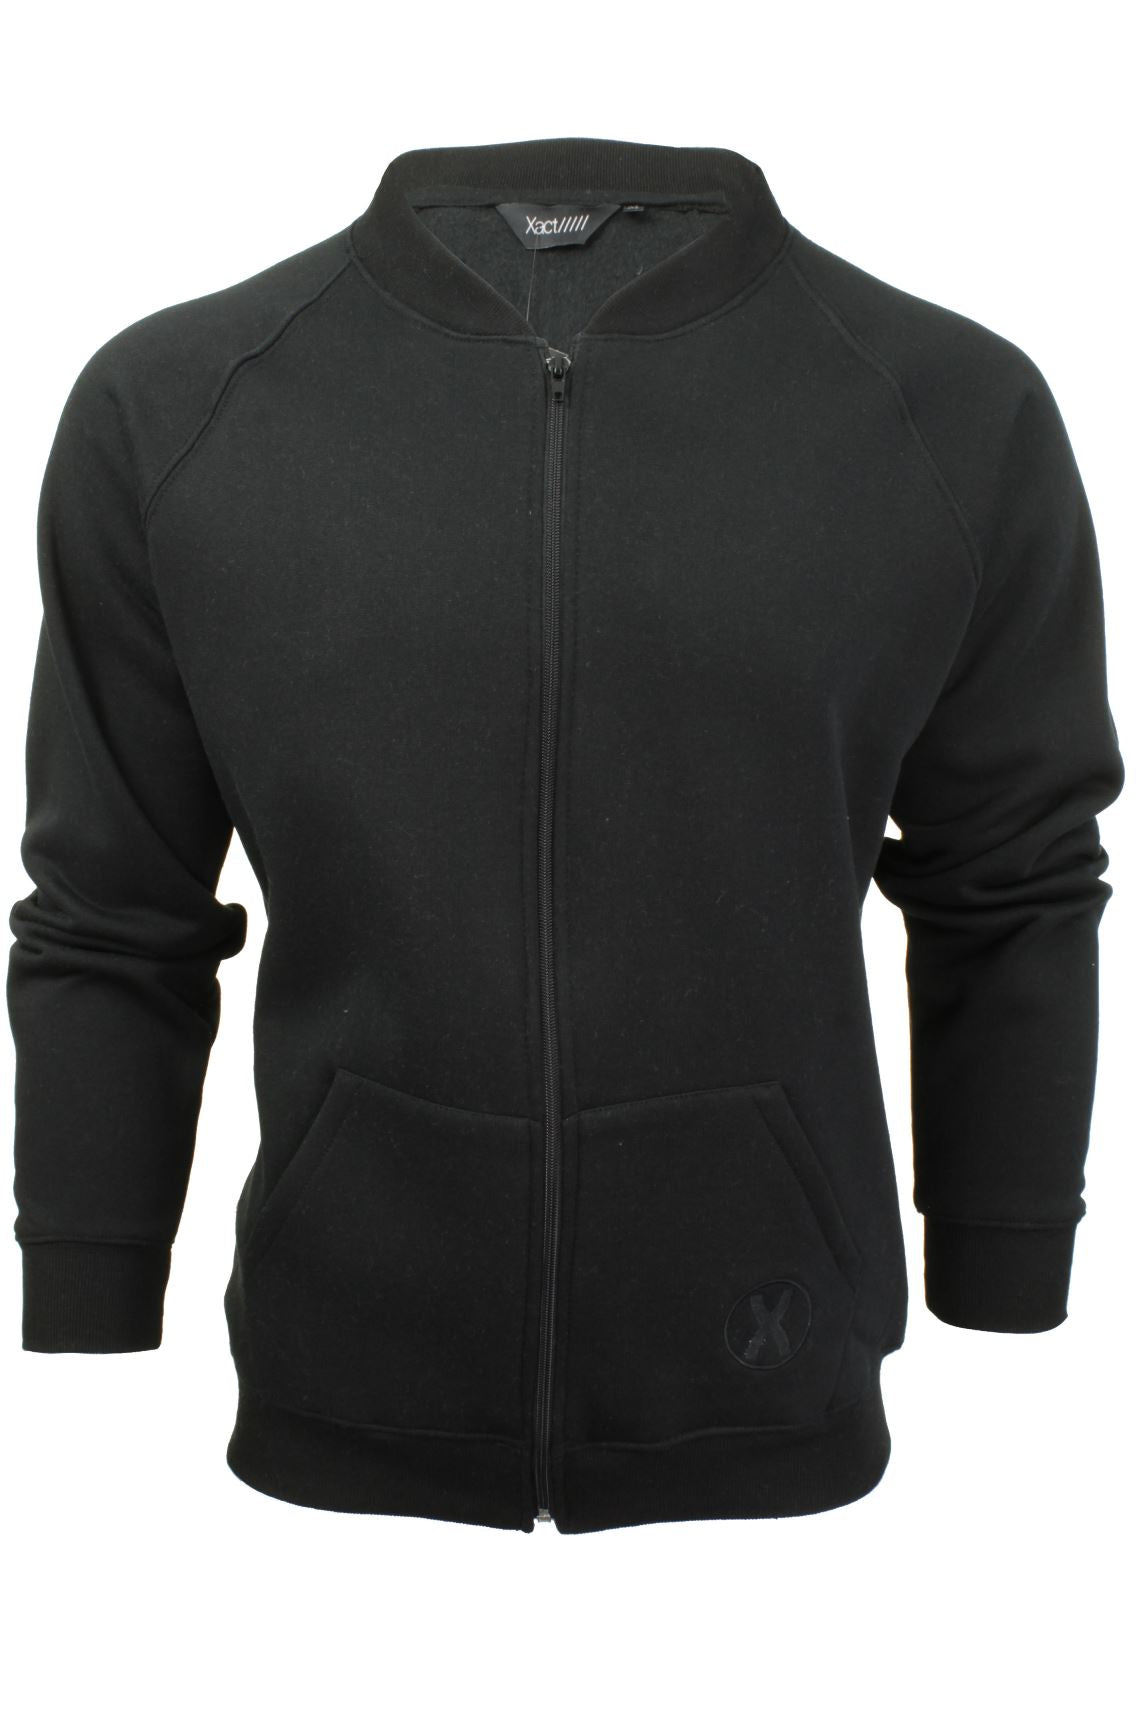 Mens Zip Through Sweatshirt Jumper by Xact Long Sleeved-Main Image